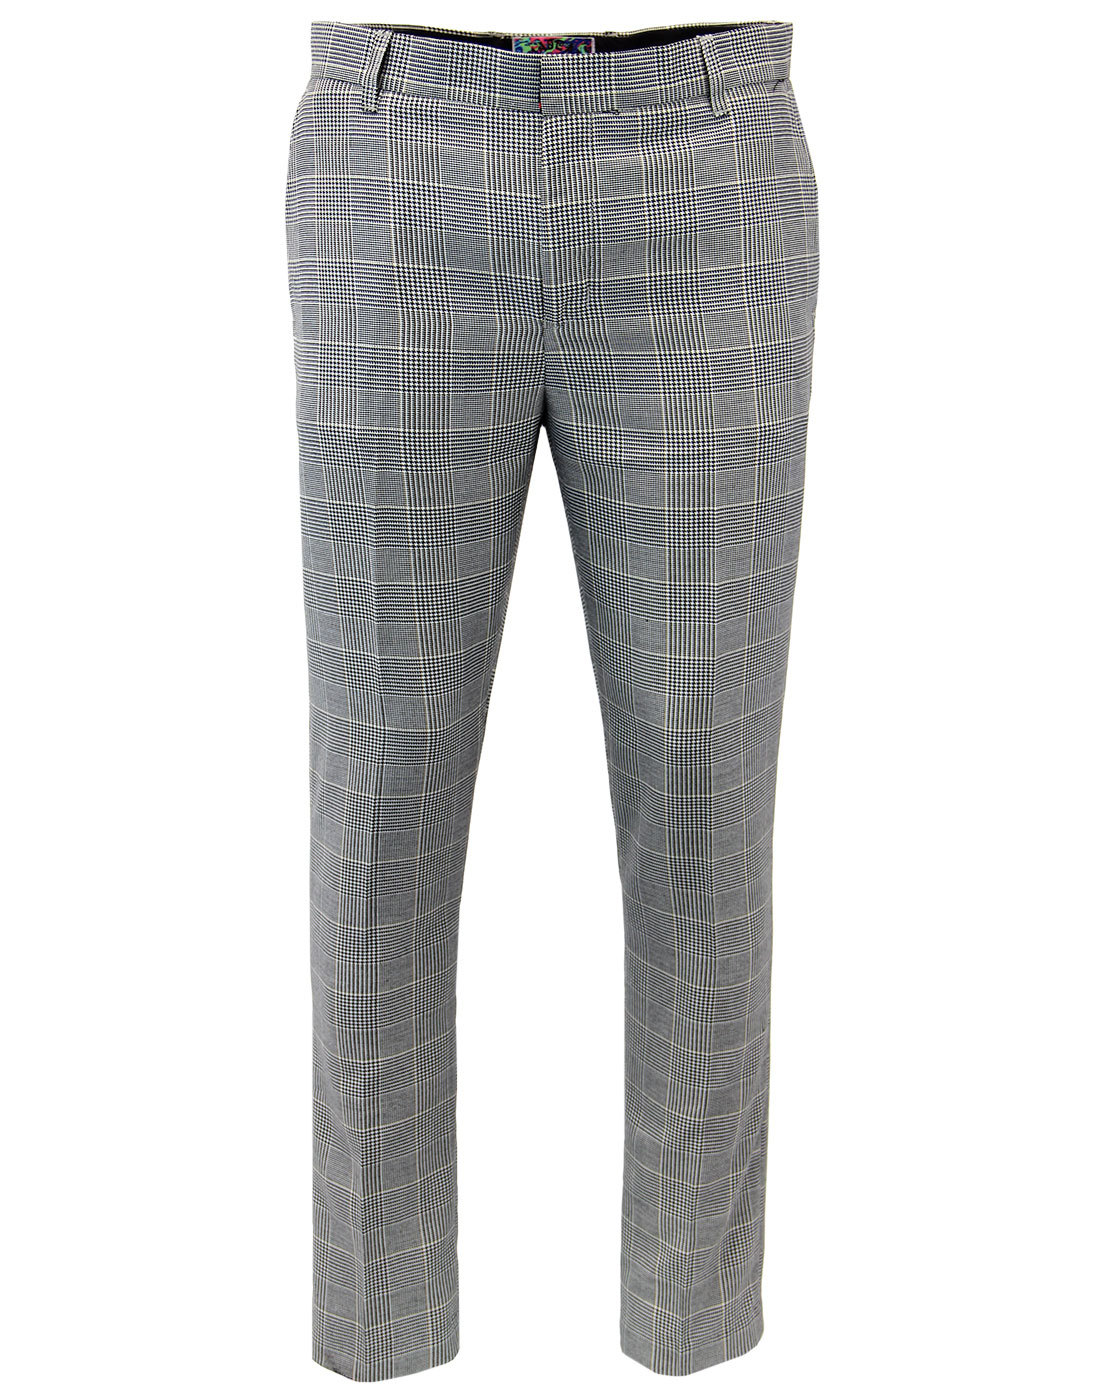 Jagger MADCAP ENGLAND Mod POW Drainpipe Trousers